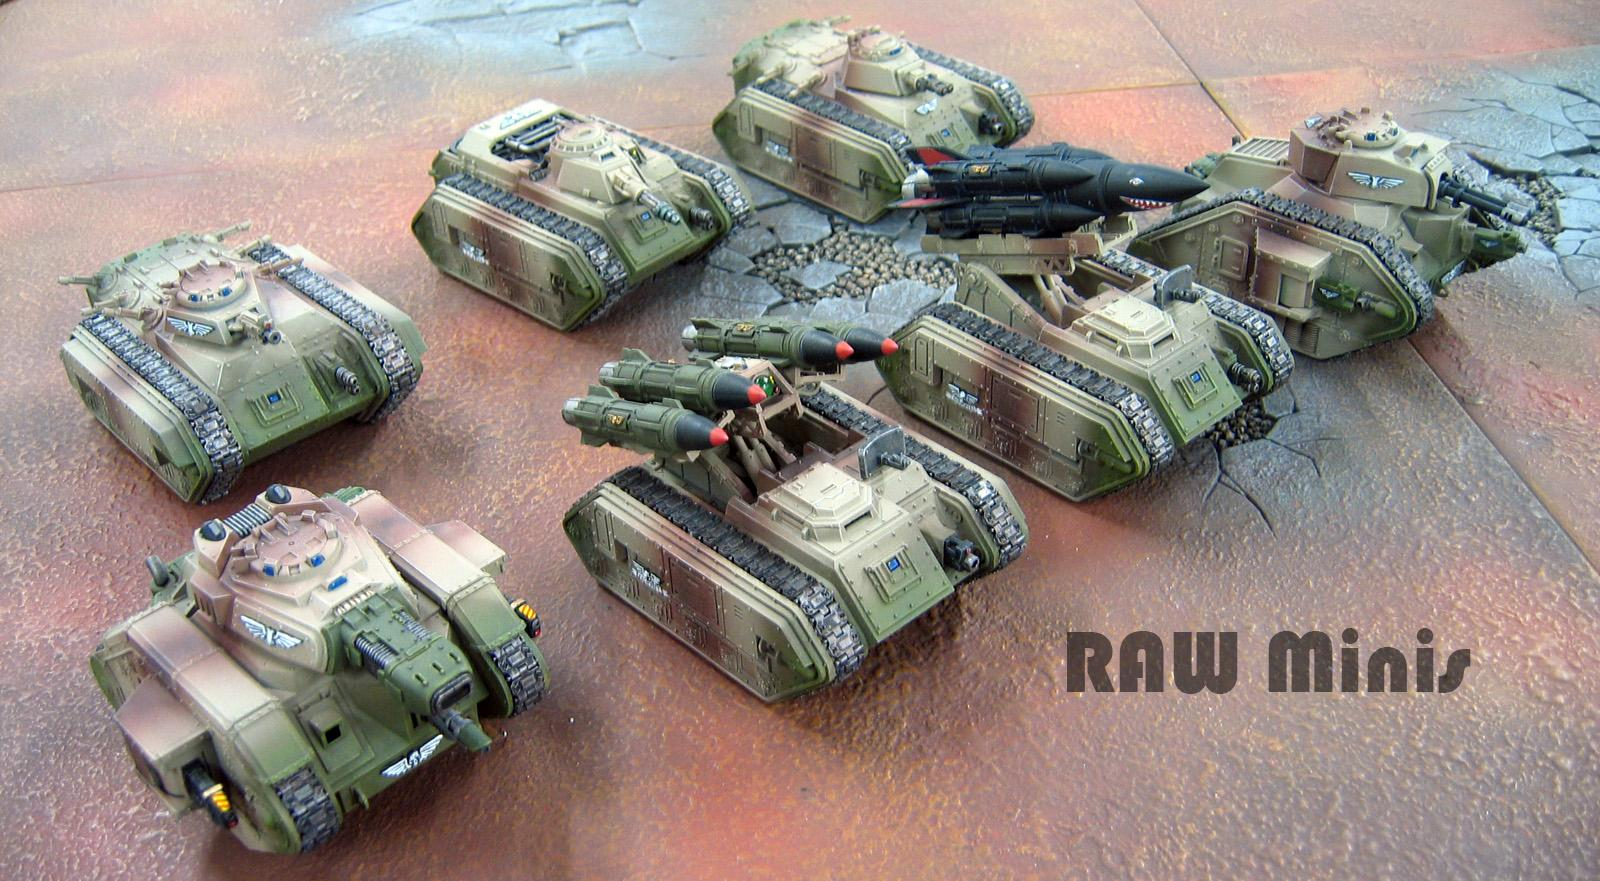 Banewolf, Cadians, Chimera, Conversion, Deathstrike, Hellhound, Imperial Guard, Leman Russ, Manticore, Painting, Tank, Vehicle, Warhammer 40,000